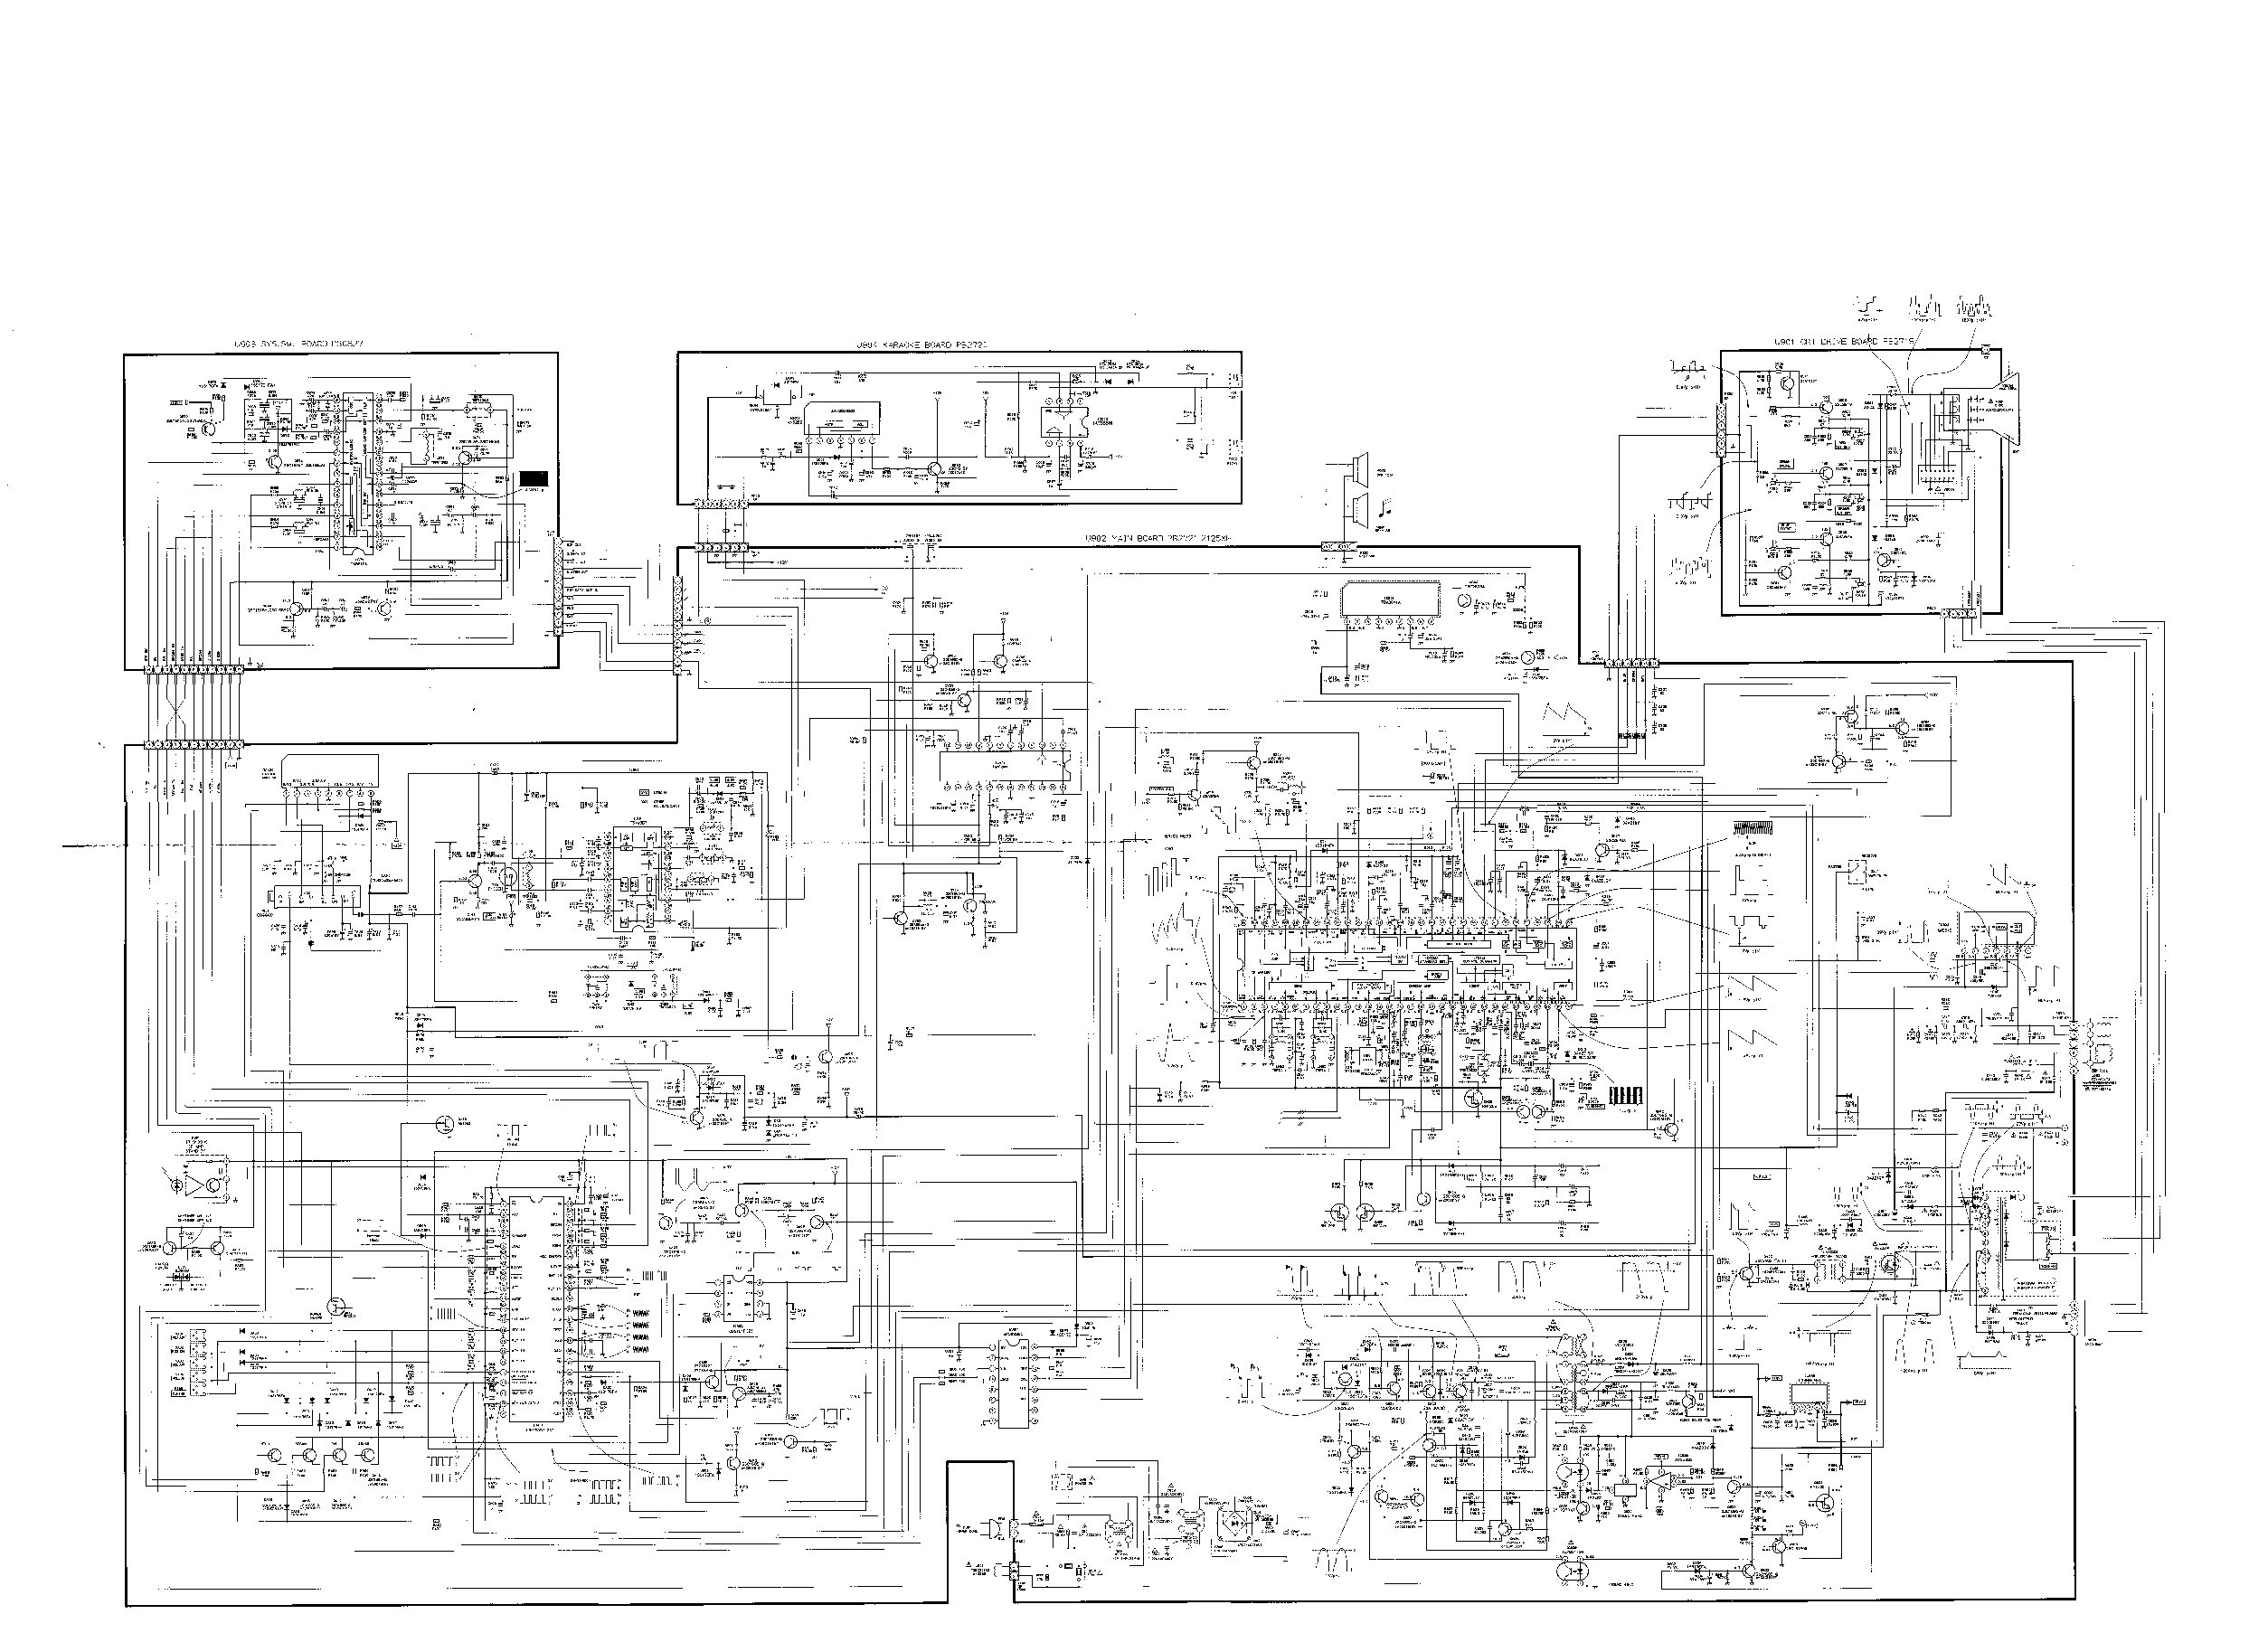 TOSHIBA 32WL56P SB Service Manual download, schematics